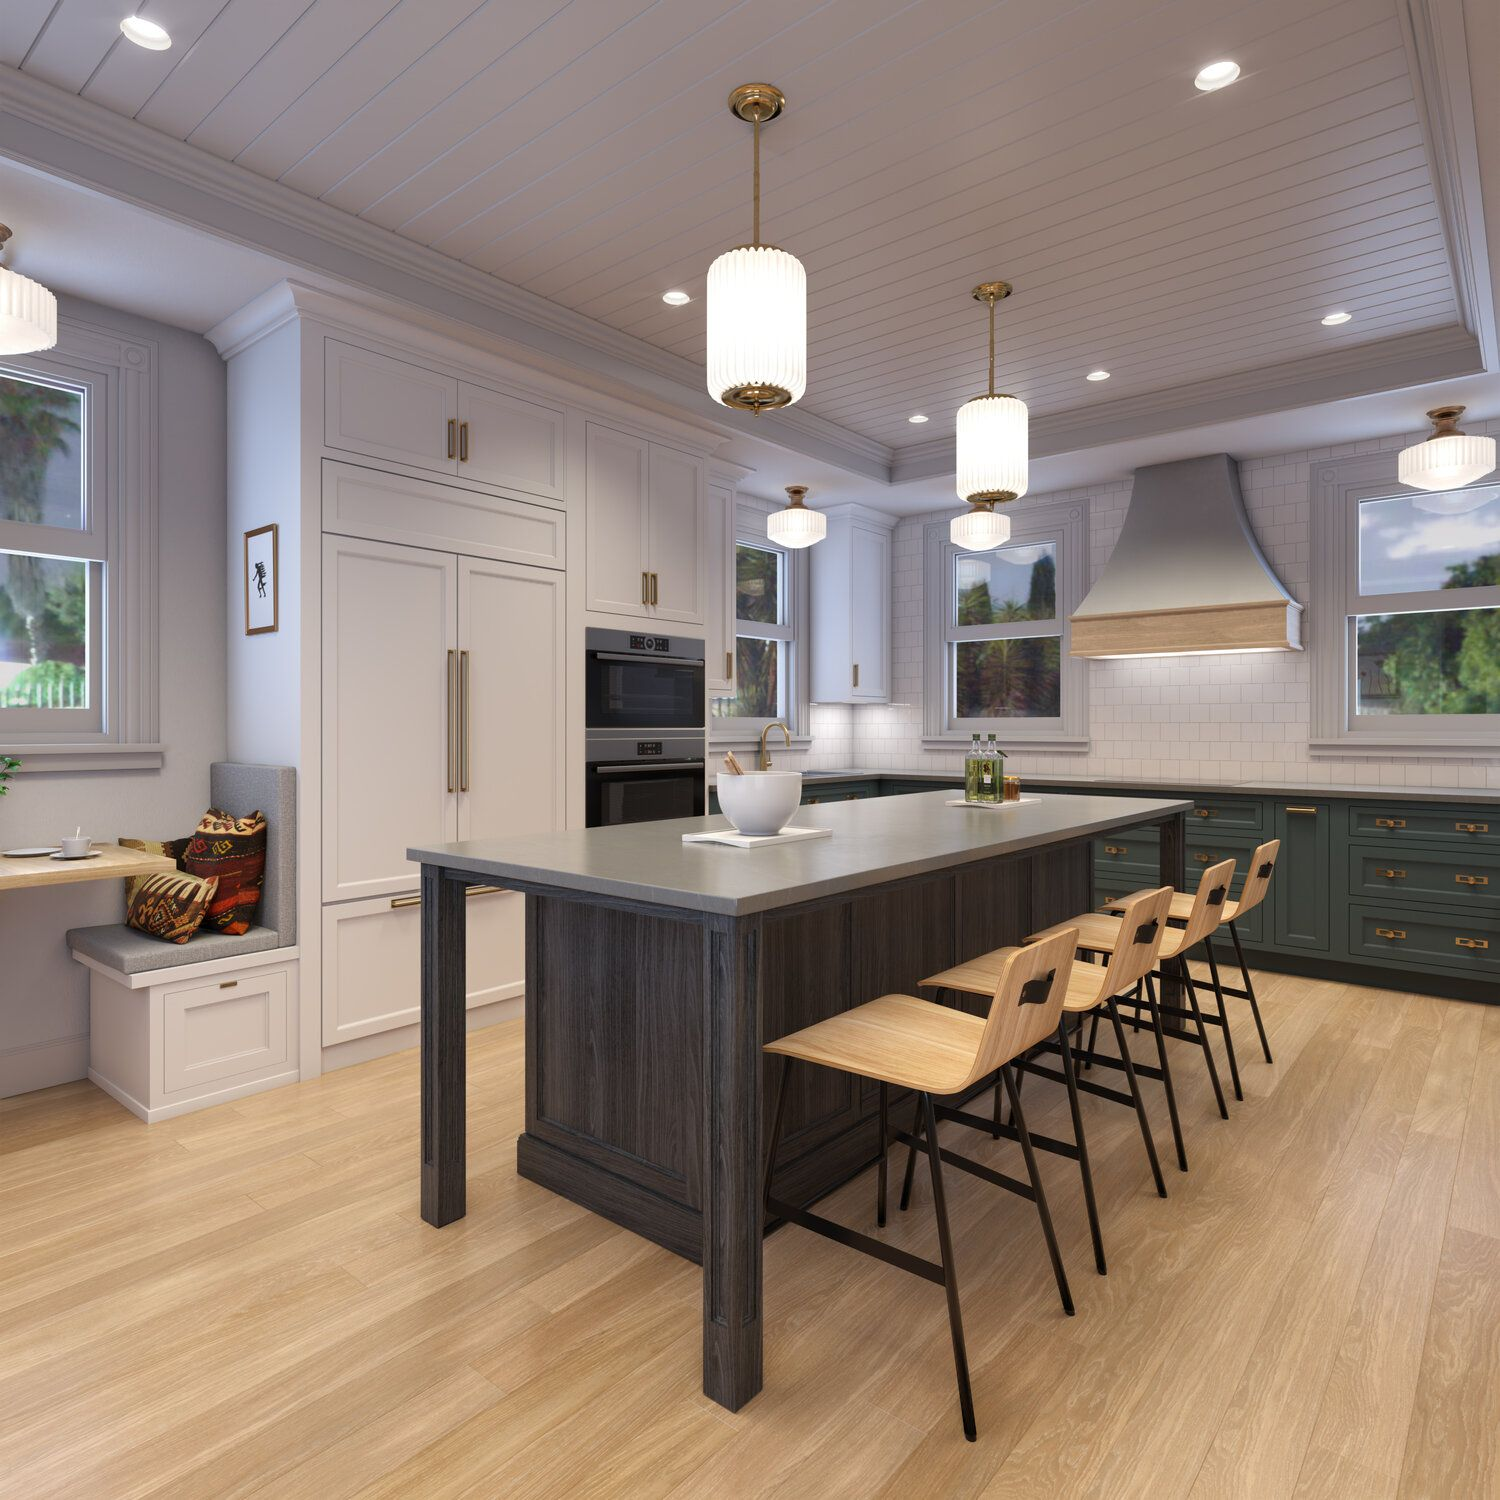 Architects Builders Serving Northern Nj And Nyc Design Build Firm Kitchen Design Architect